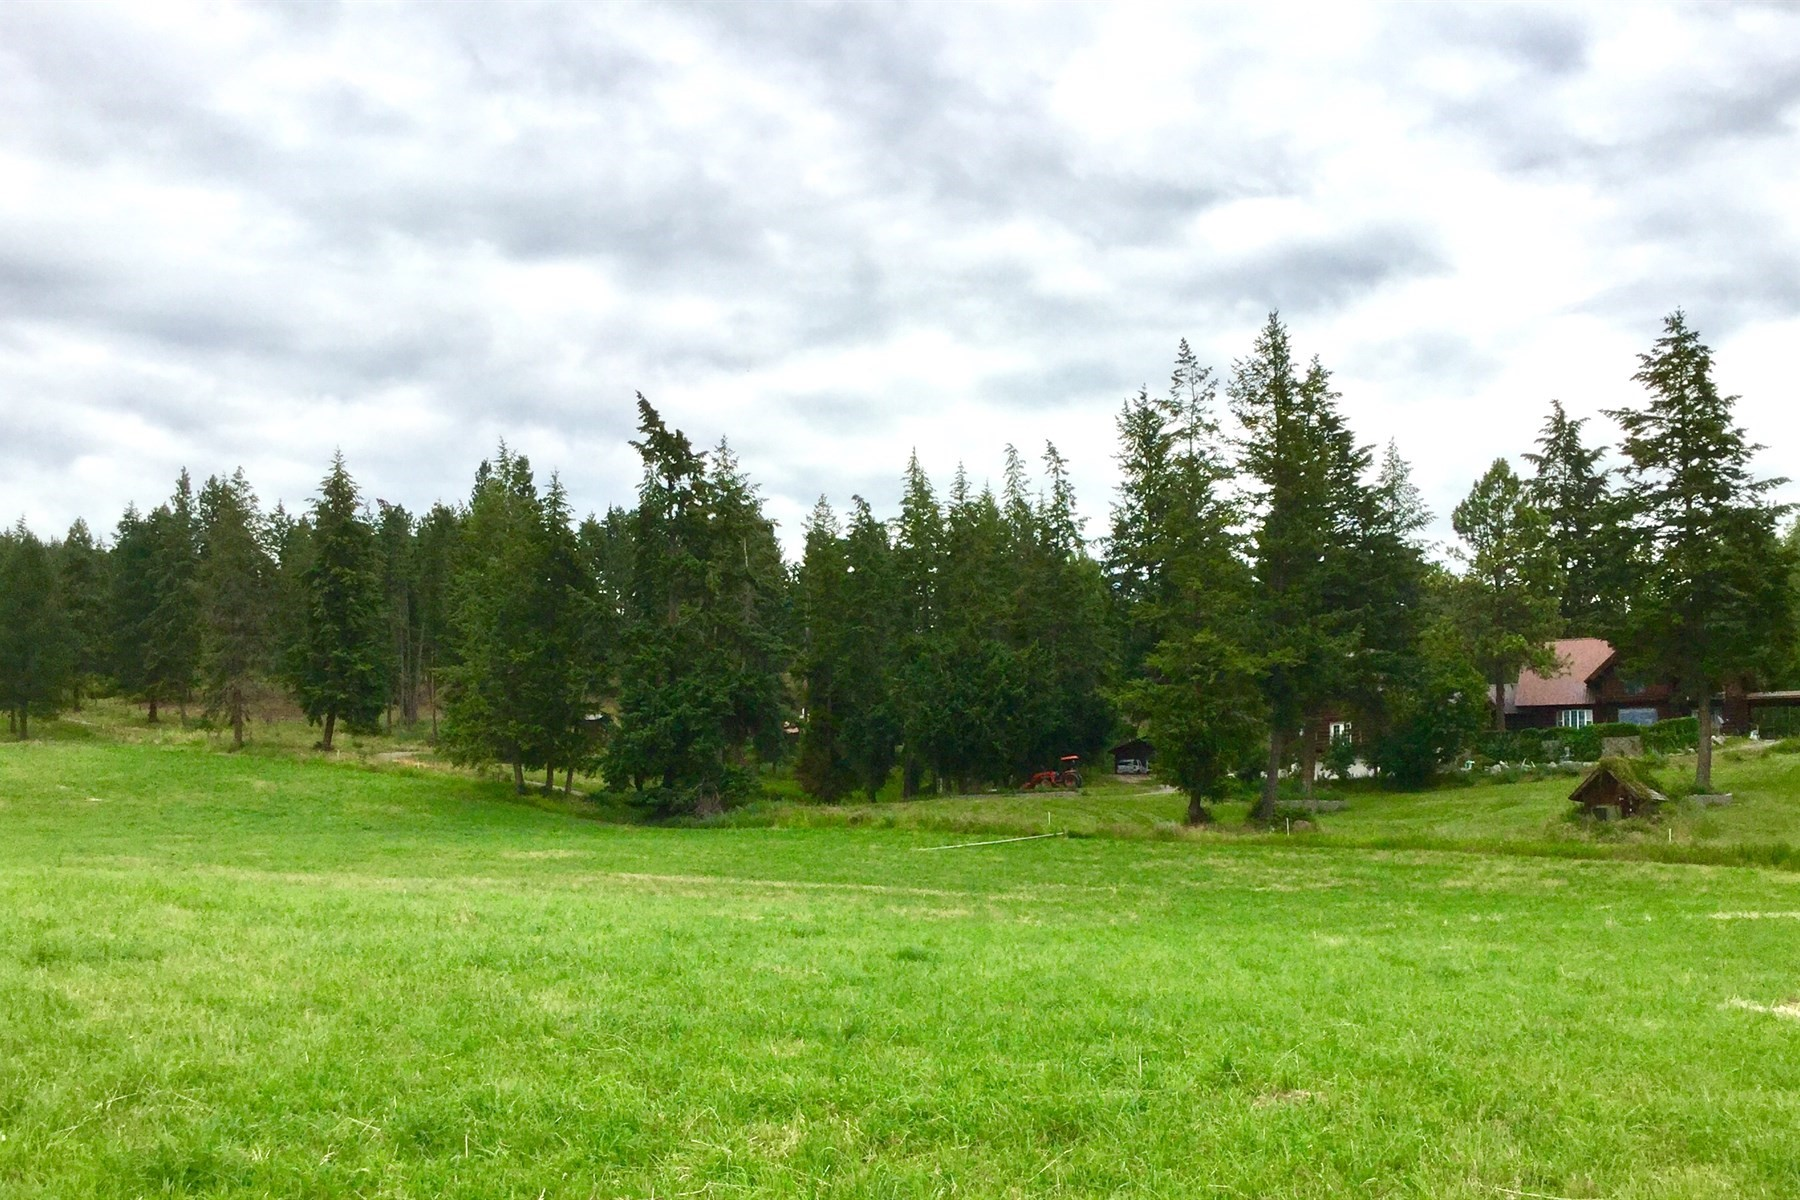 Single Family Homes for Active at Highground Ranch 897 Wallen Rd Bonners Ferry, Idaho 83805 United States